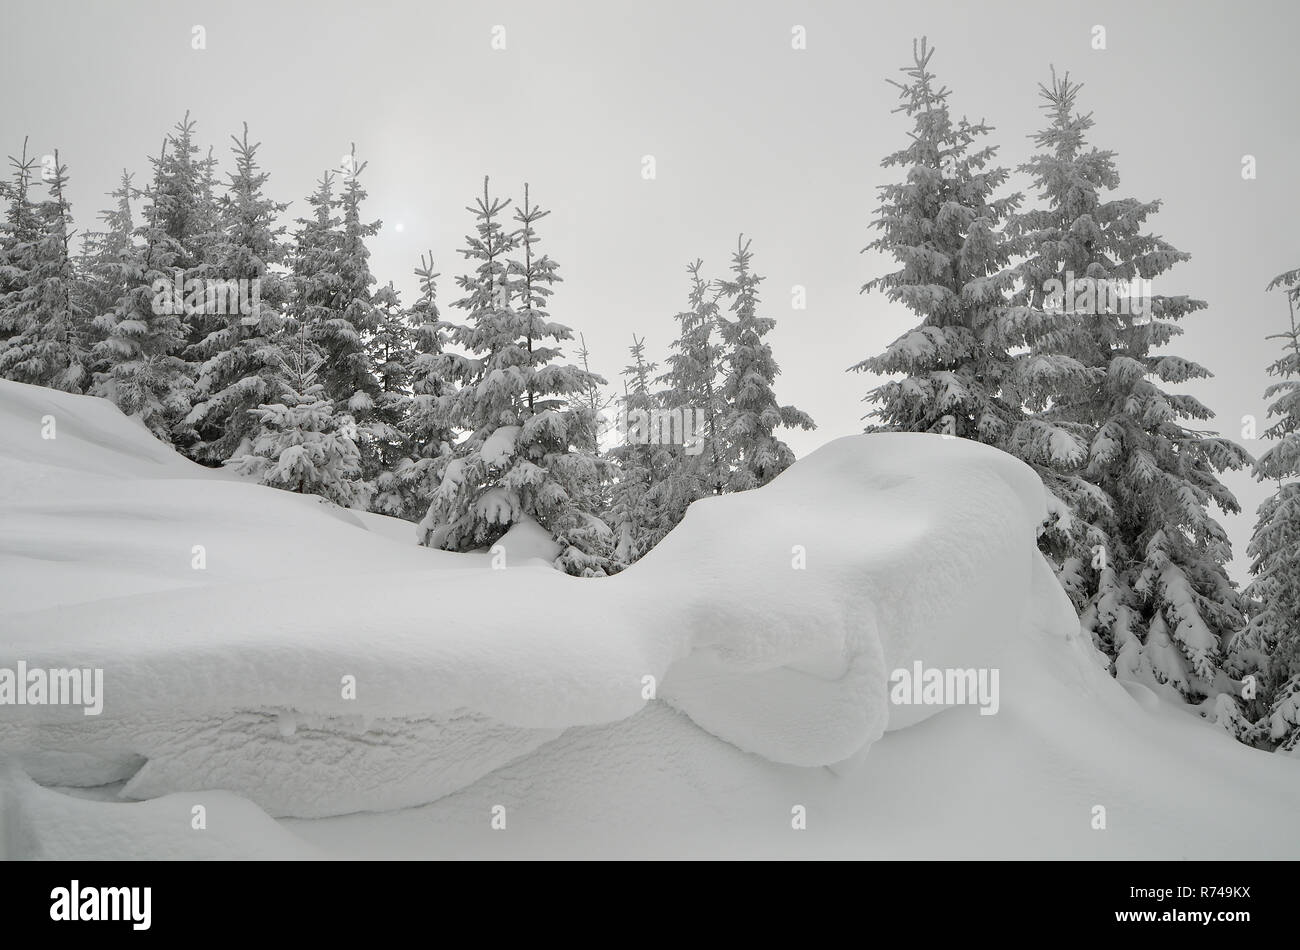 Christmas view. Snow-covered forest in the mountains. Landscape in gray tones overcast day. The sun shines through the clouds. Carpathians, Ukraine, E - Stock Image